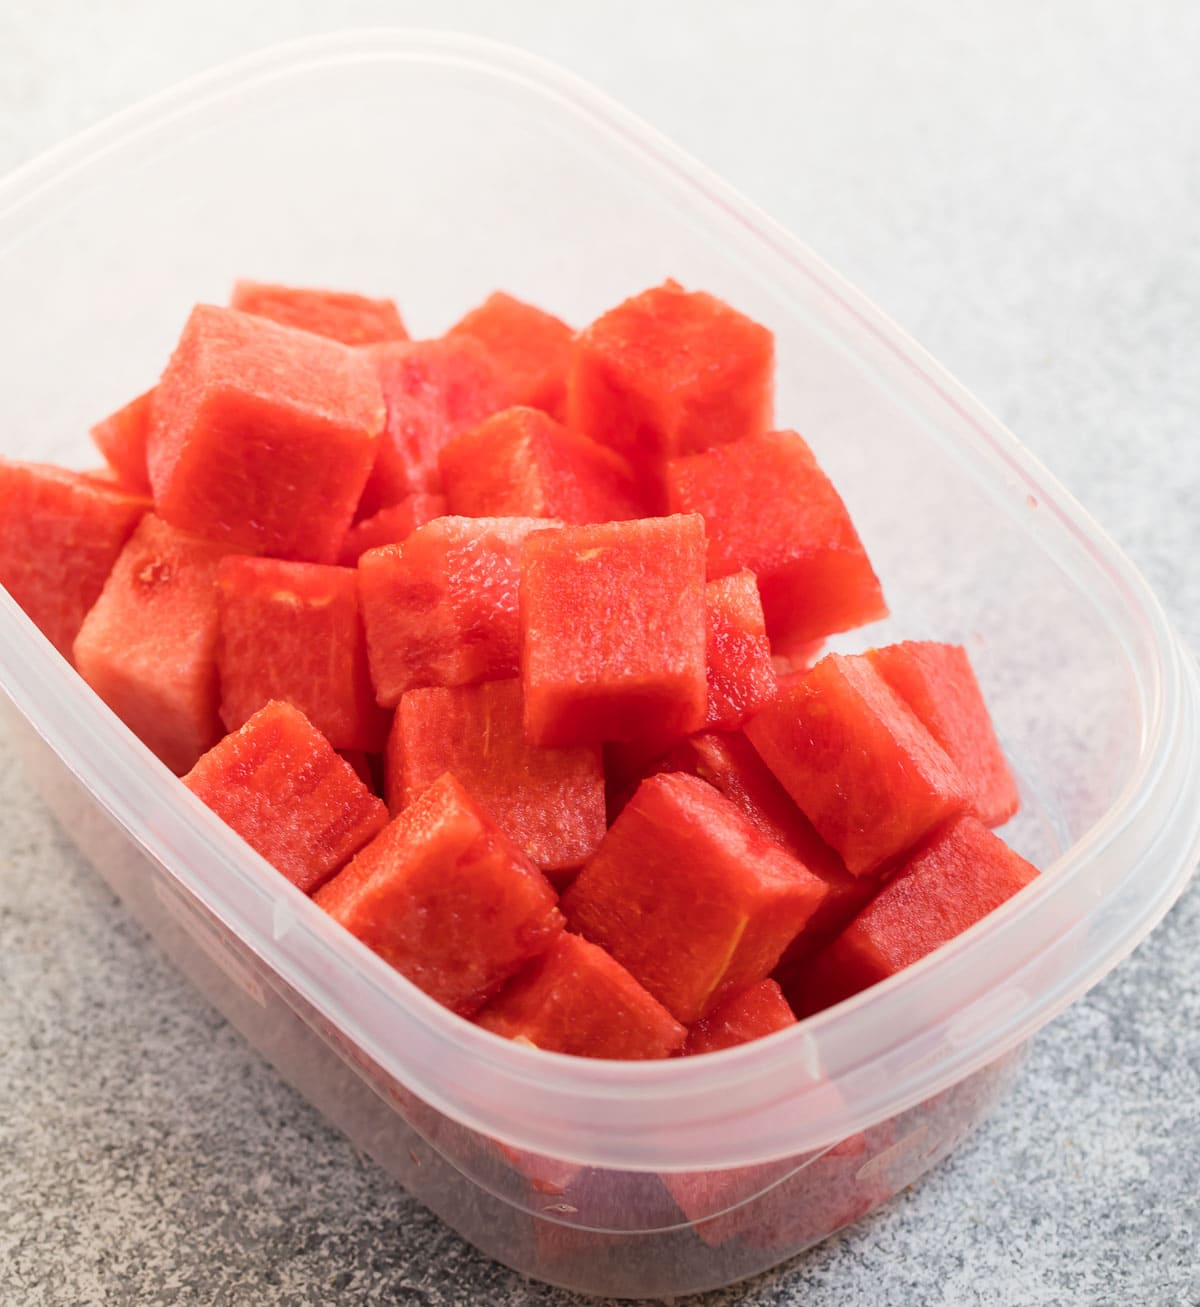 Cubes of watermelon in a container